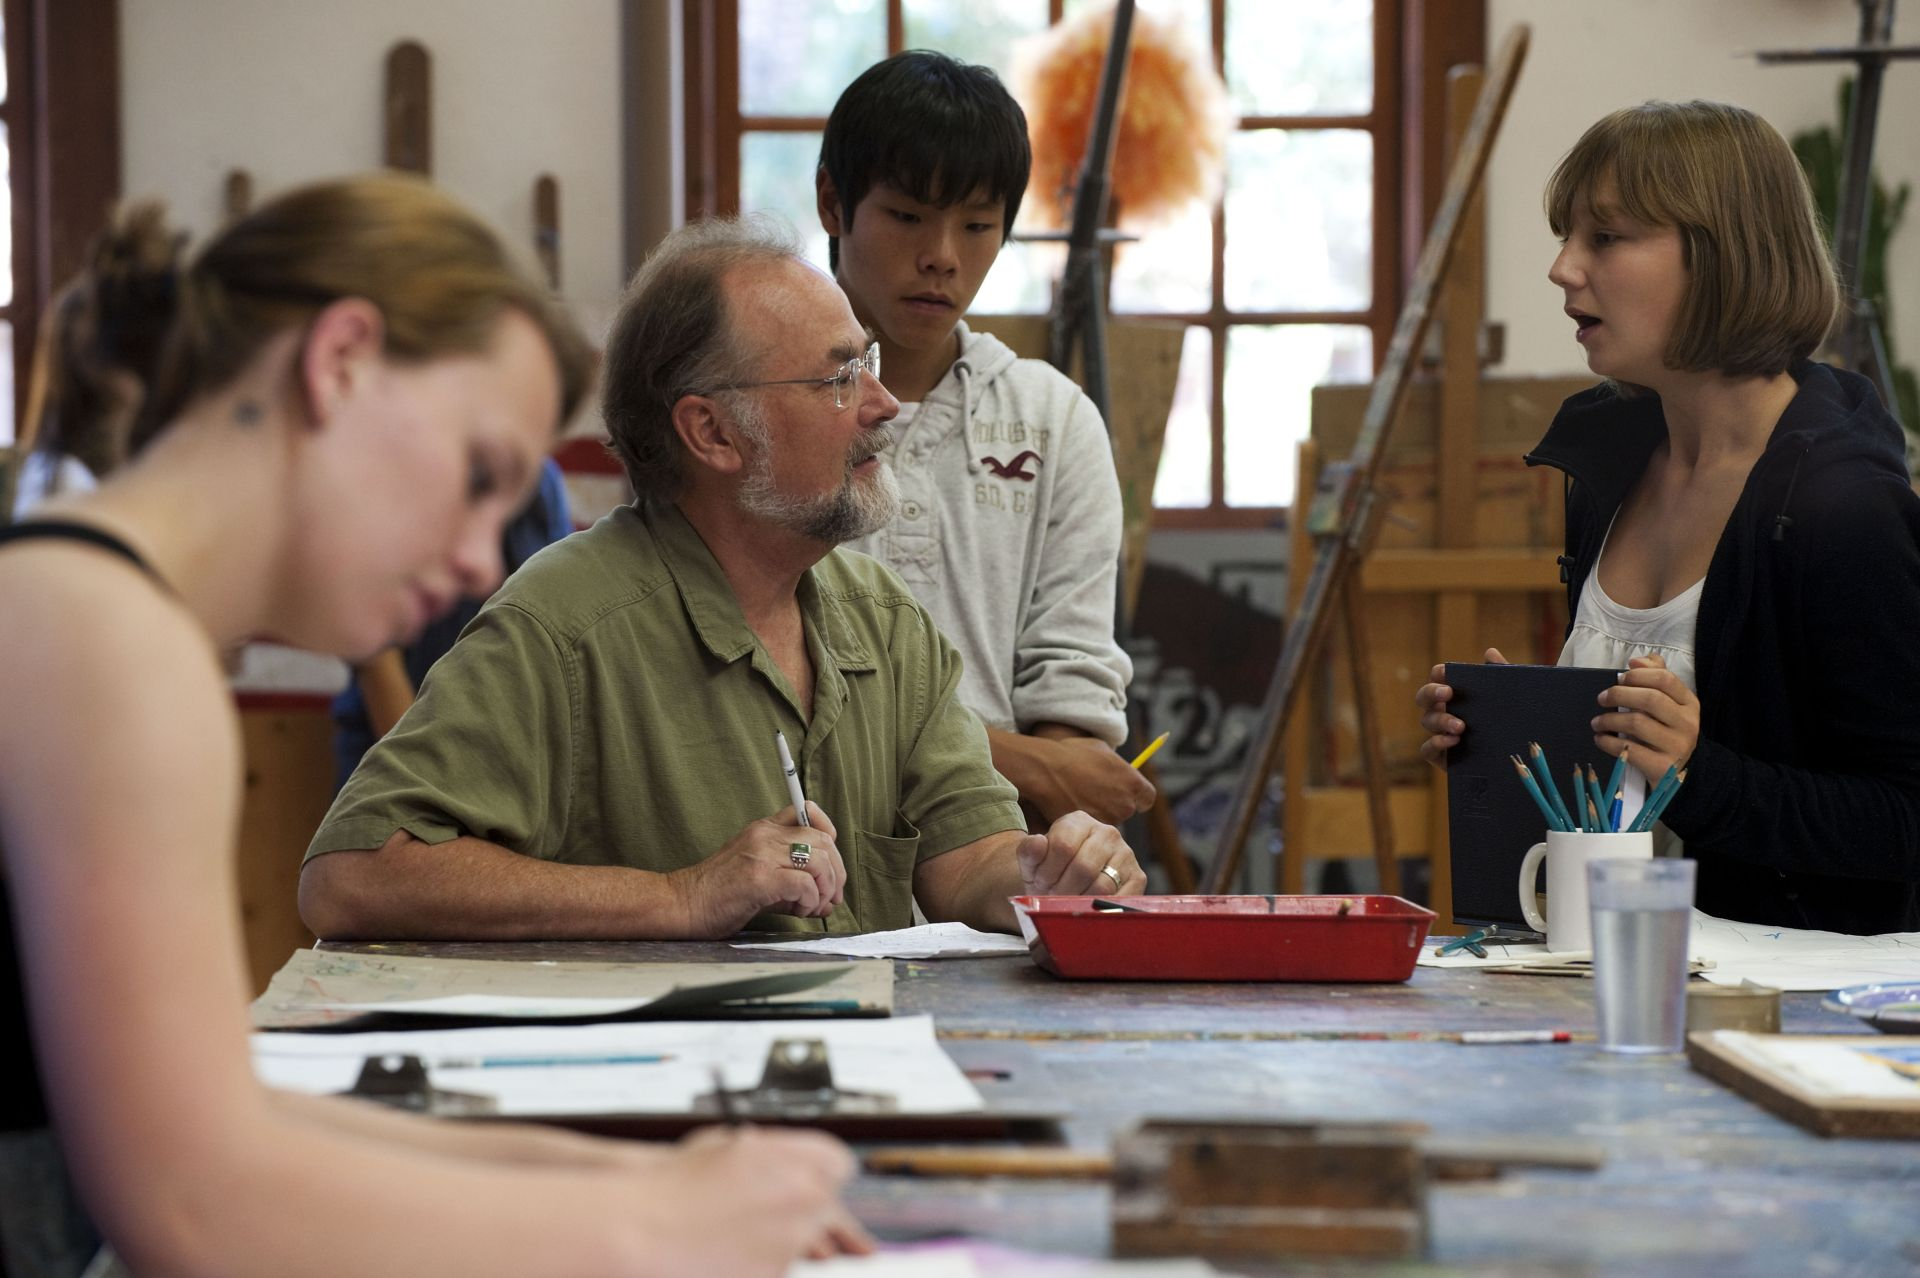 Artist-in-Residence Jeff Brown works with students.